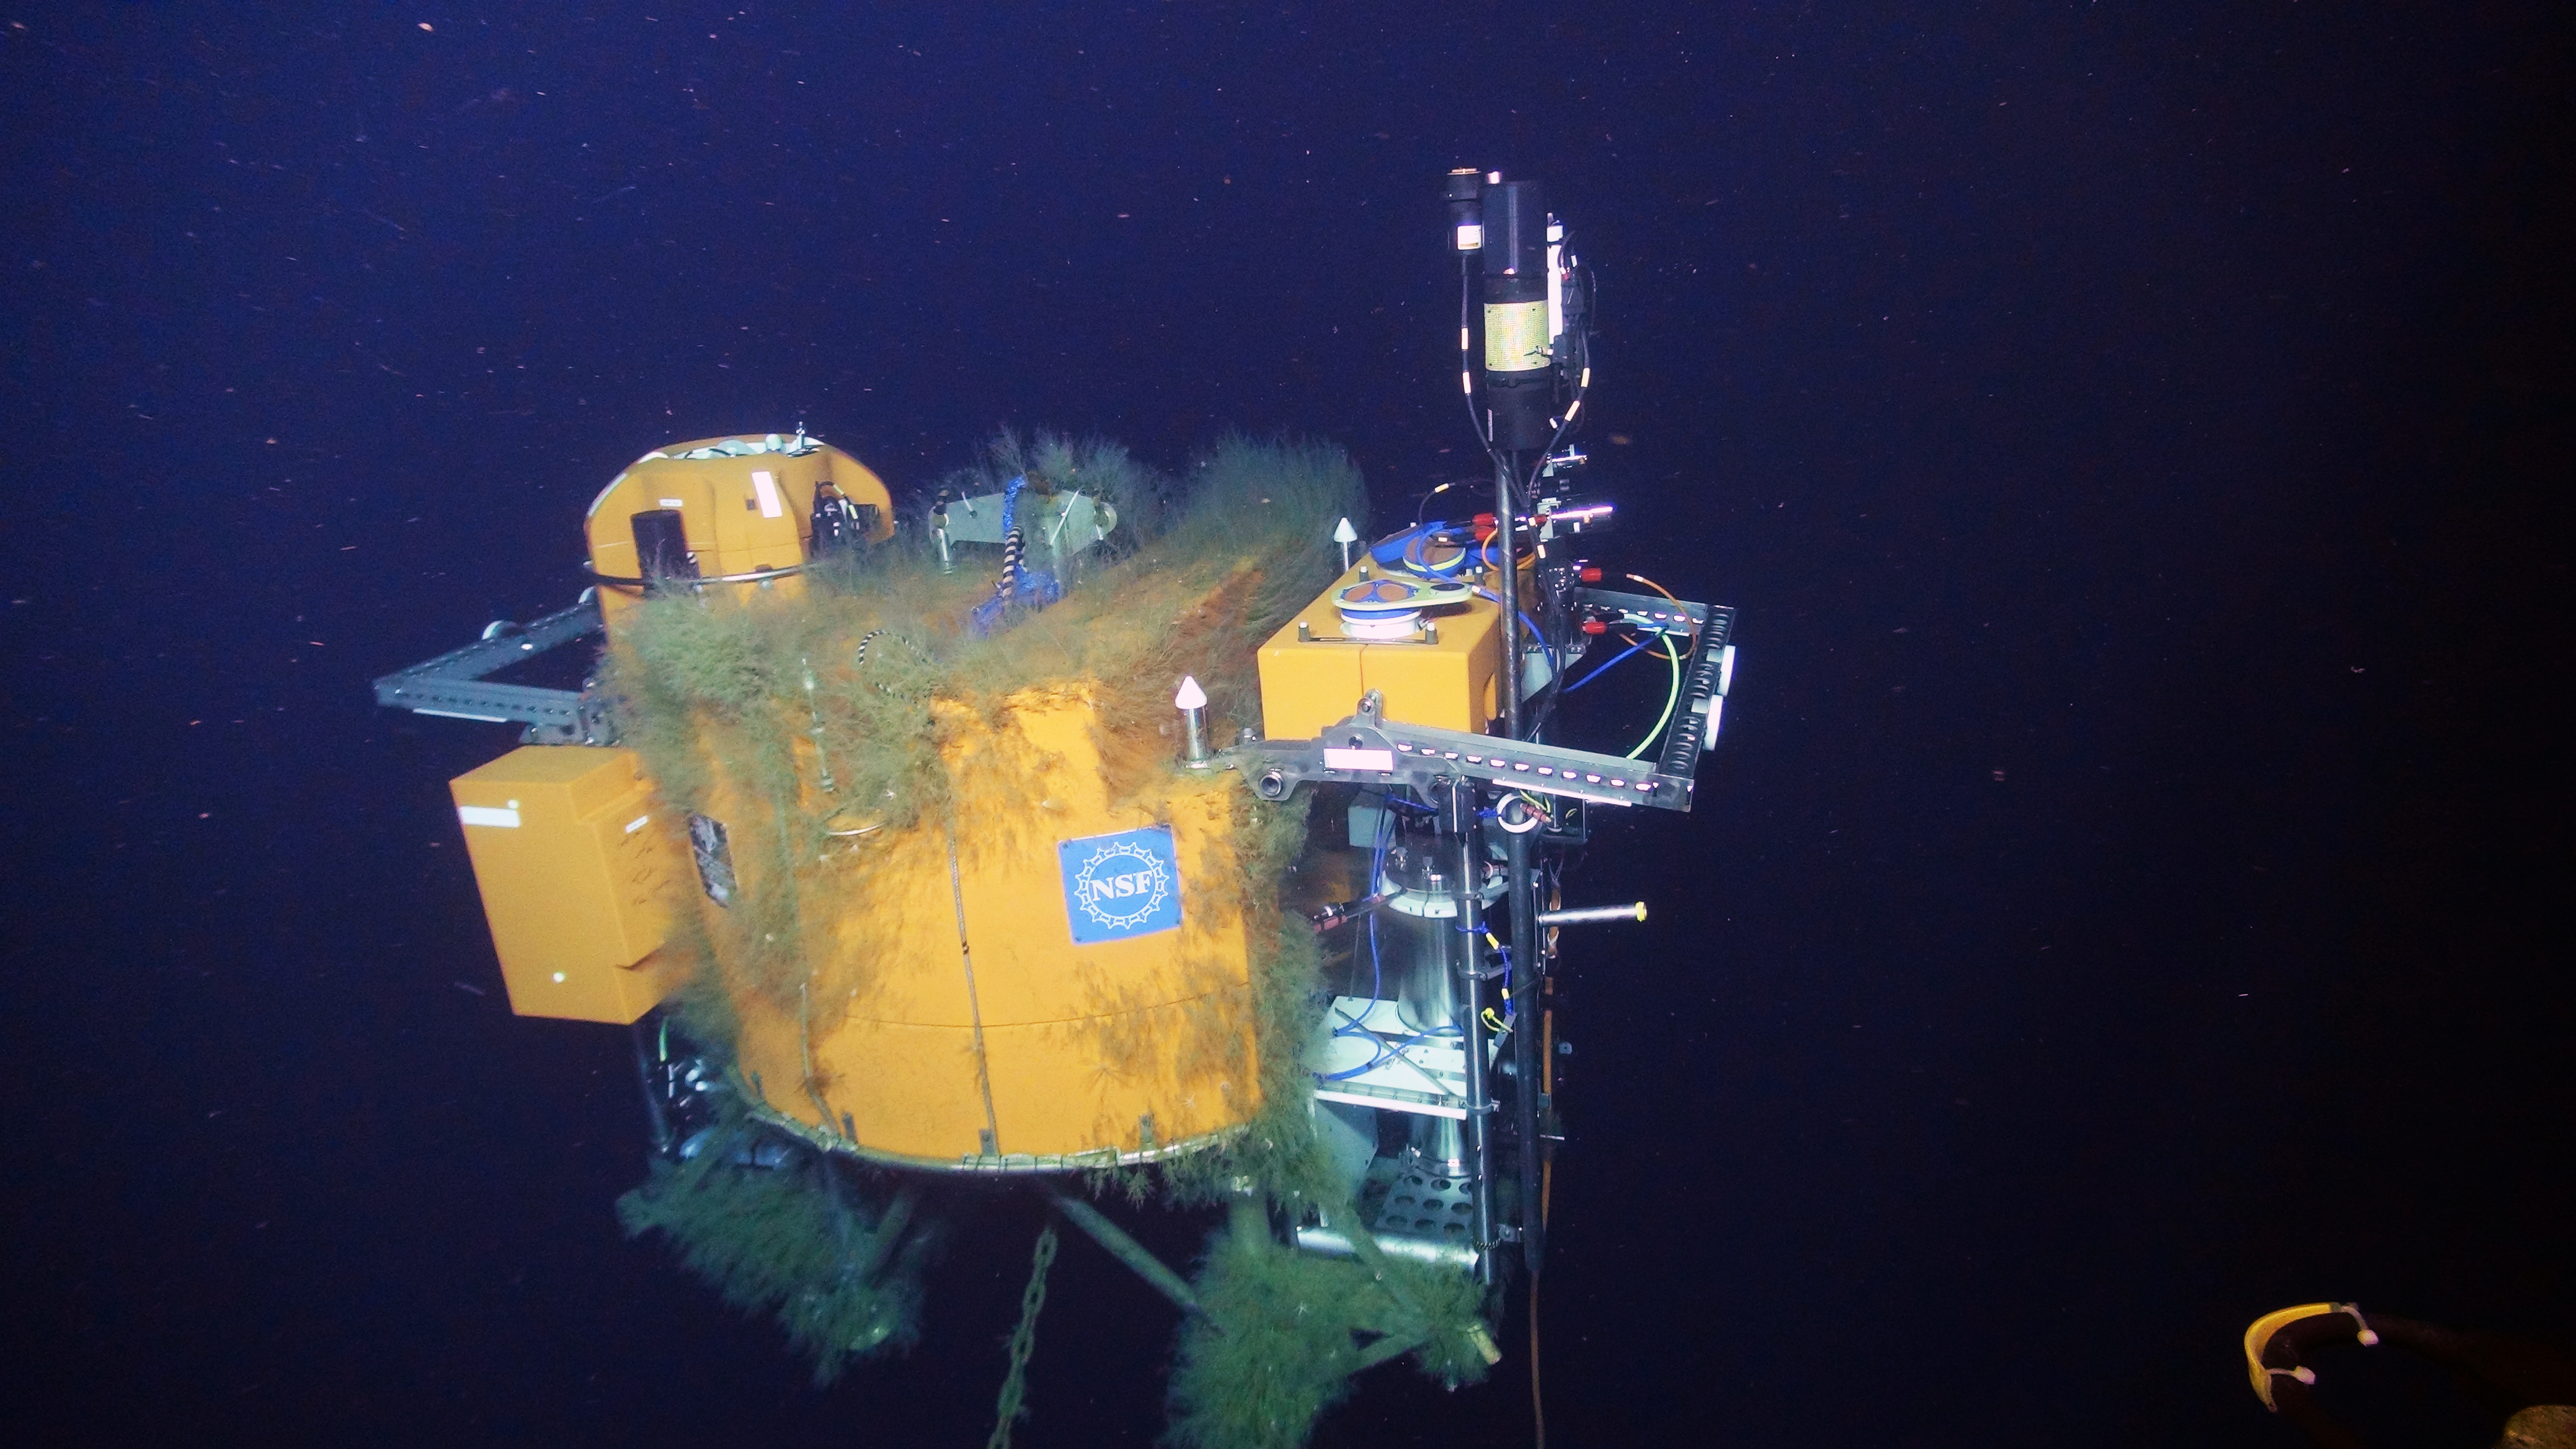 The Shallow Profiler Mooring 12-ft across, 7 ton platform hosts a new Science Pod (left) and Platform Interface Assembly (PIA, right) installed on Jason Dive J2-917 as part of the annual maintance operations for these moorings. The 'mother' platform sprouts a variety of life that was not present last year when we turned the Science Pod and PIA. Credit: UW/OOI-NSF/WHOI; V16.